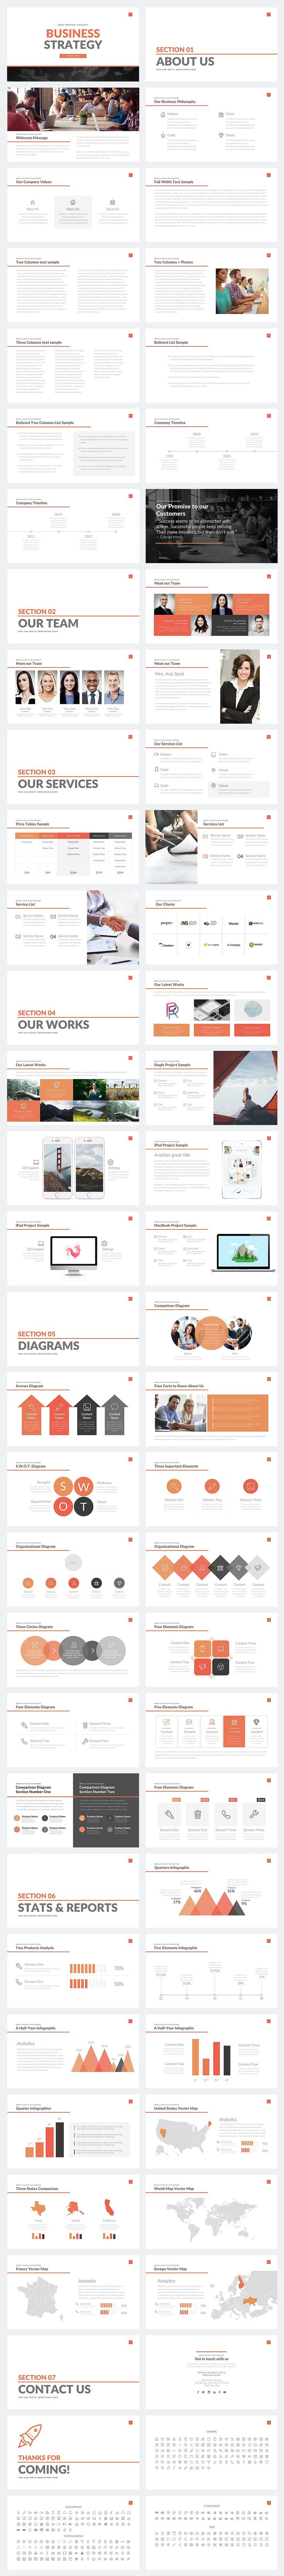 Business Strategy Deck PowerPoint by Rocketo Graphics on @creativemarket #ad